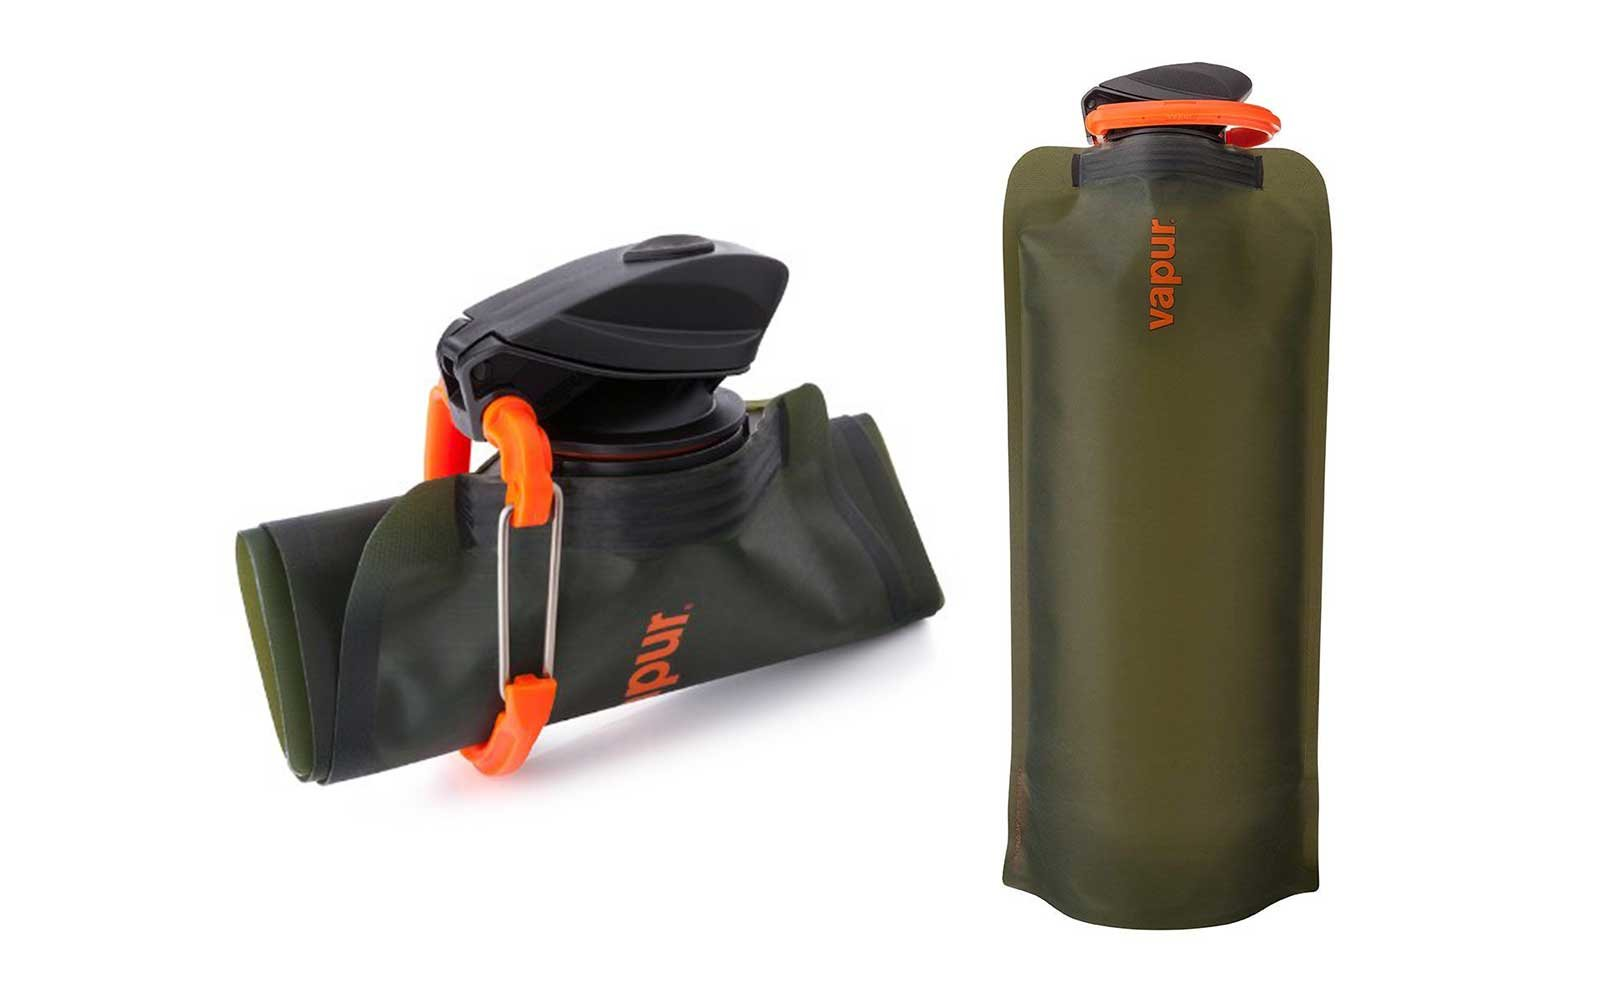 Vapor foldable water bottle